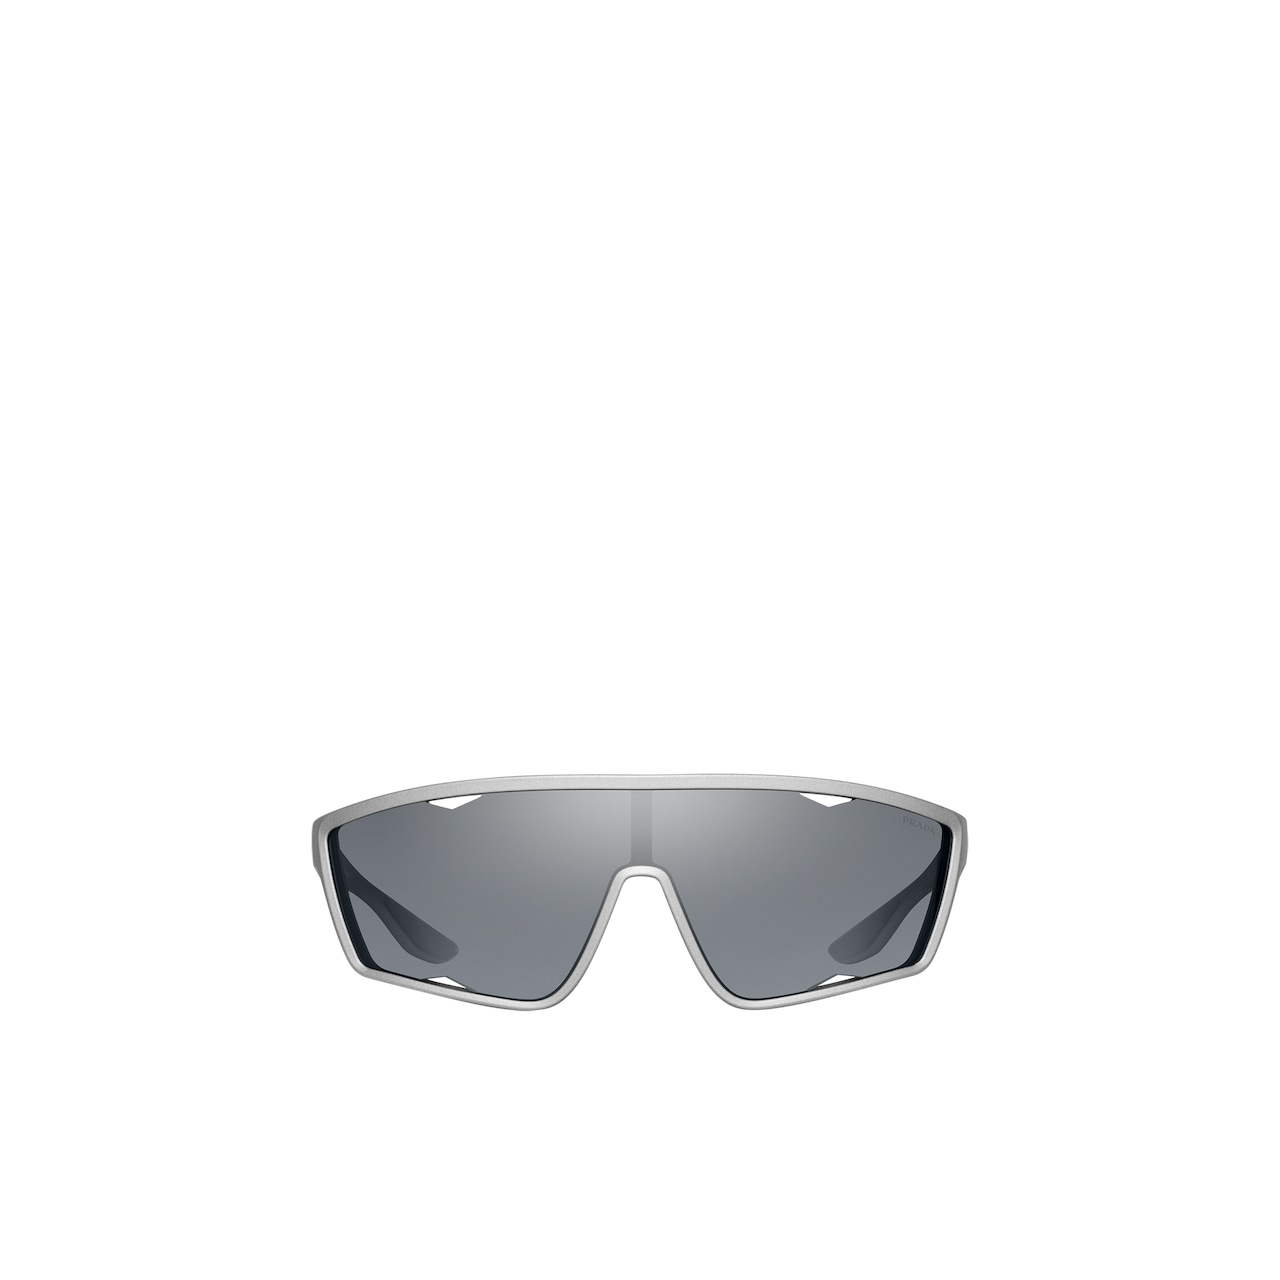 Prada Prada Eyewear Collection sunglasses 1